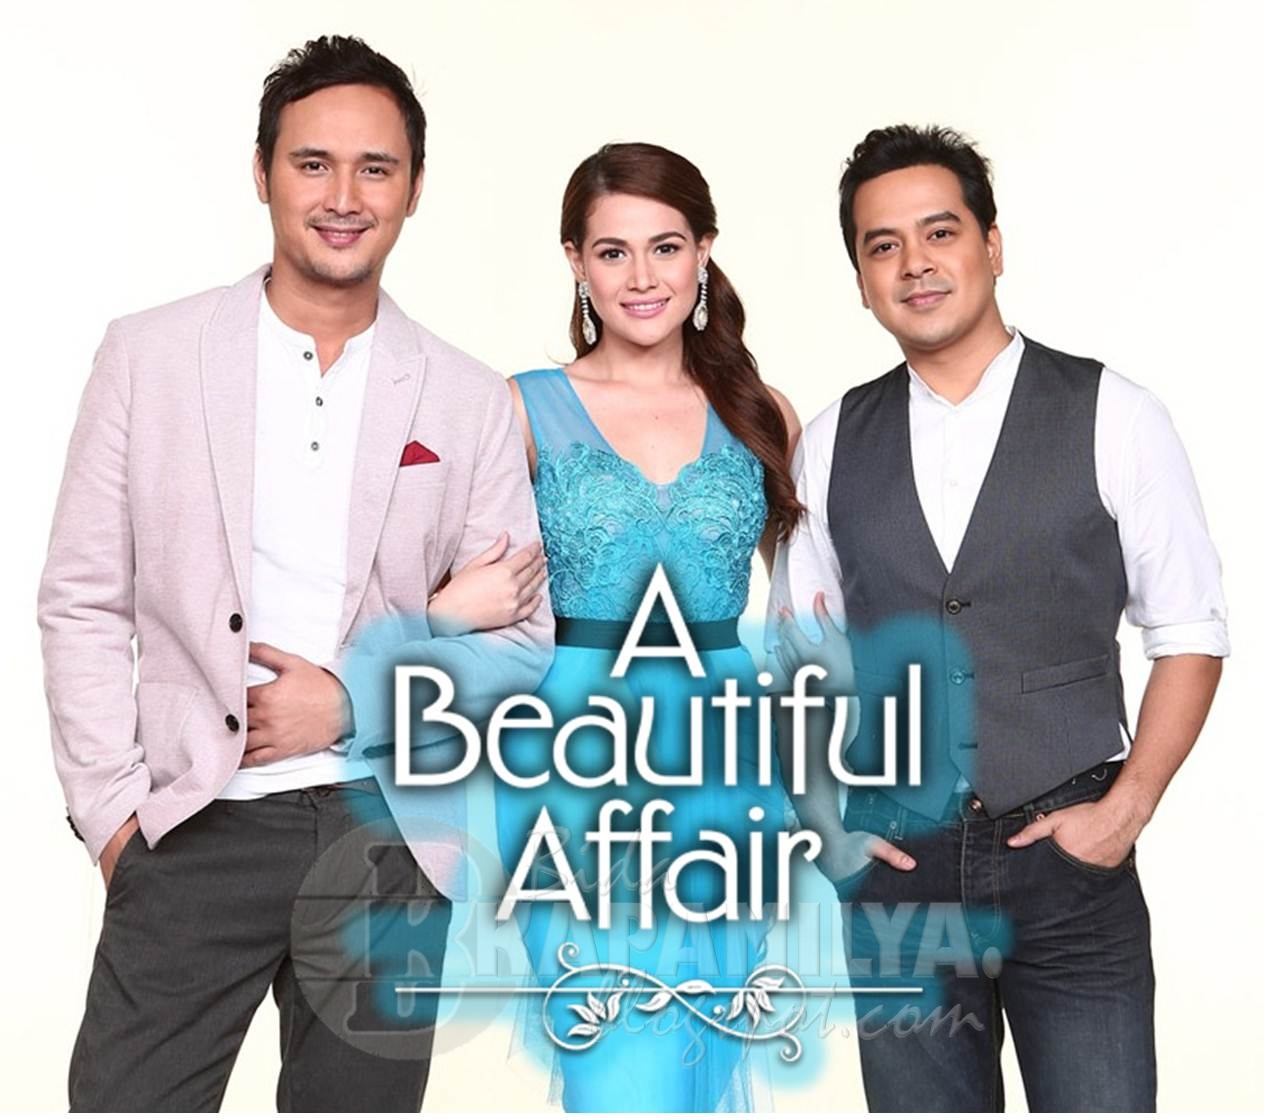 A BEAUTIFUL AFFAIR - NOV. 01, 2012 PART 3/4